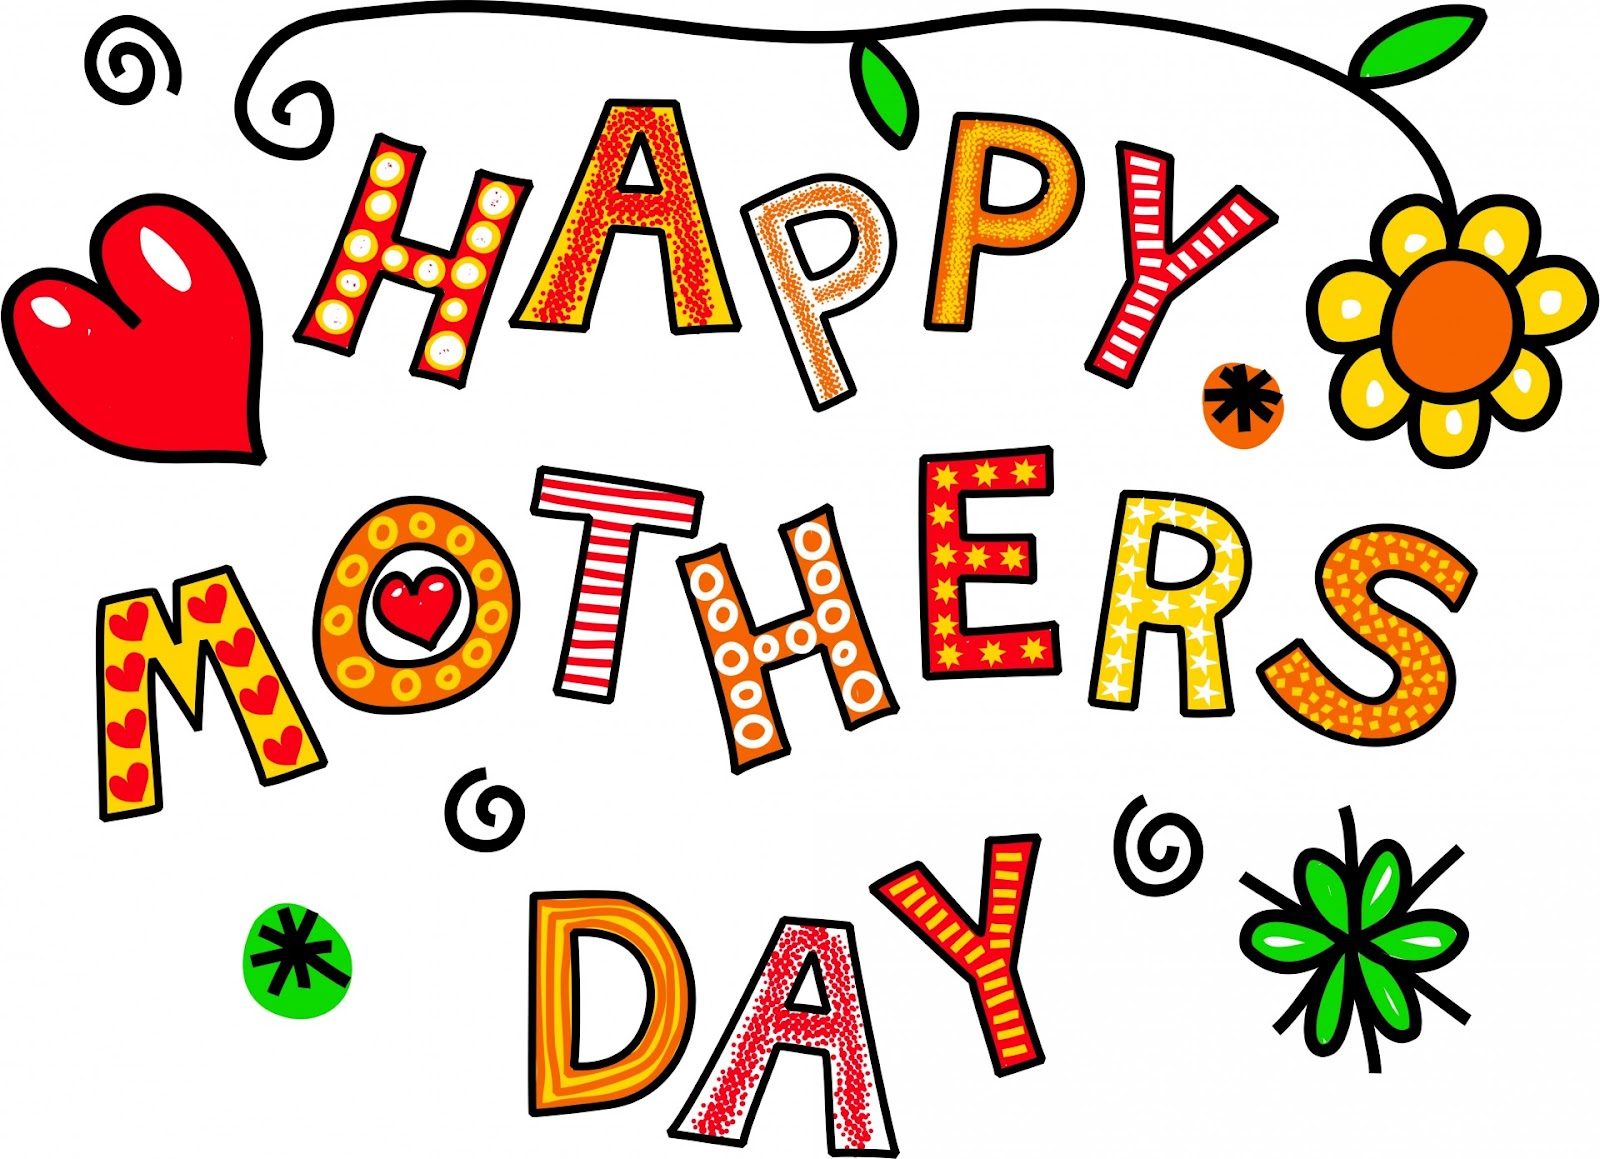 Happy Mothers Day Free Stock Photo - Public Domain Pictures